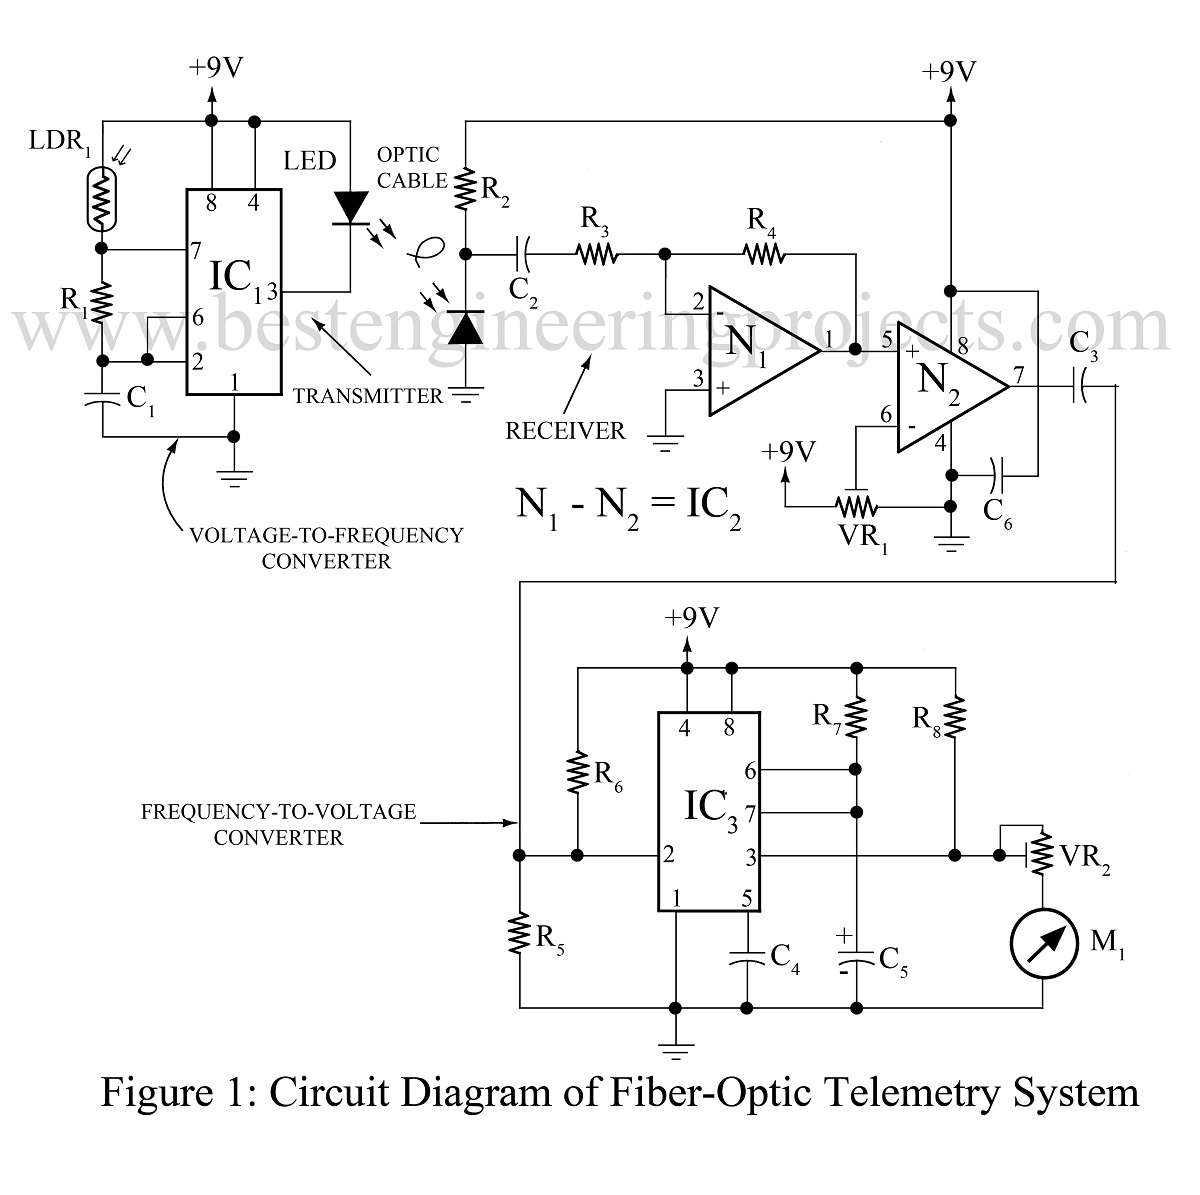 Fiber Optics Diagram Letter Wiring Diagrams Optic Cable Schematic Telemetry System Using Ne555 And Mc1458 Network